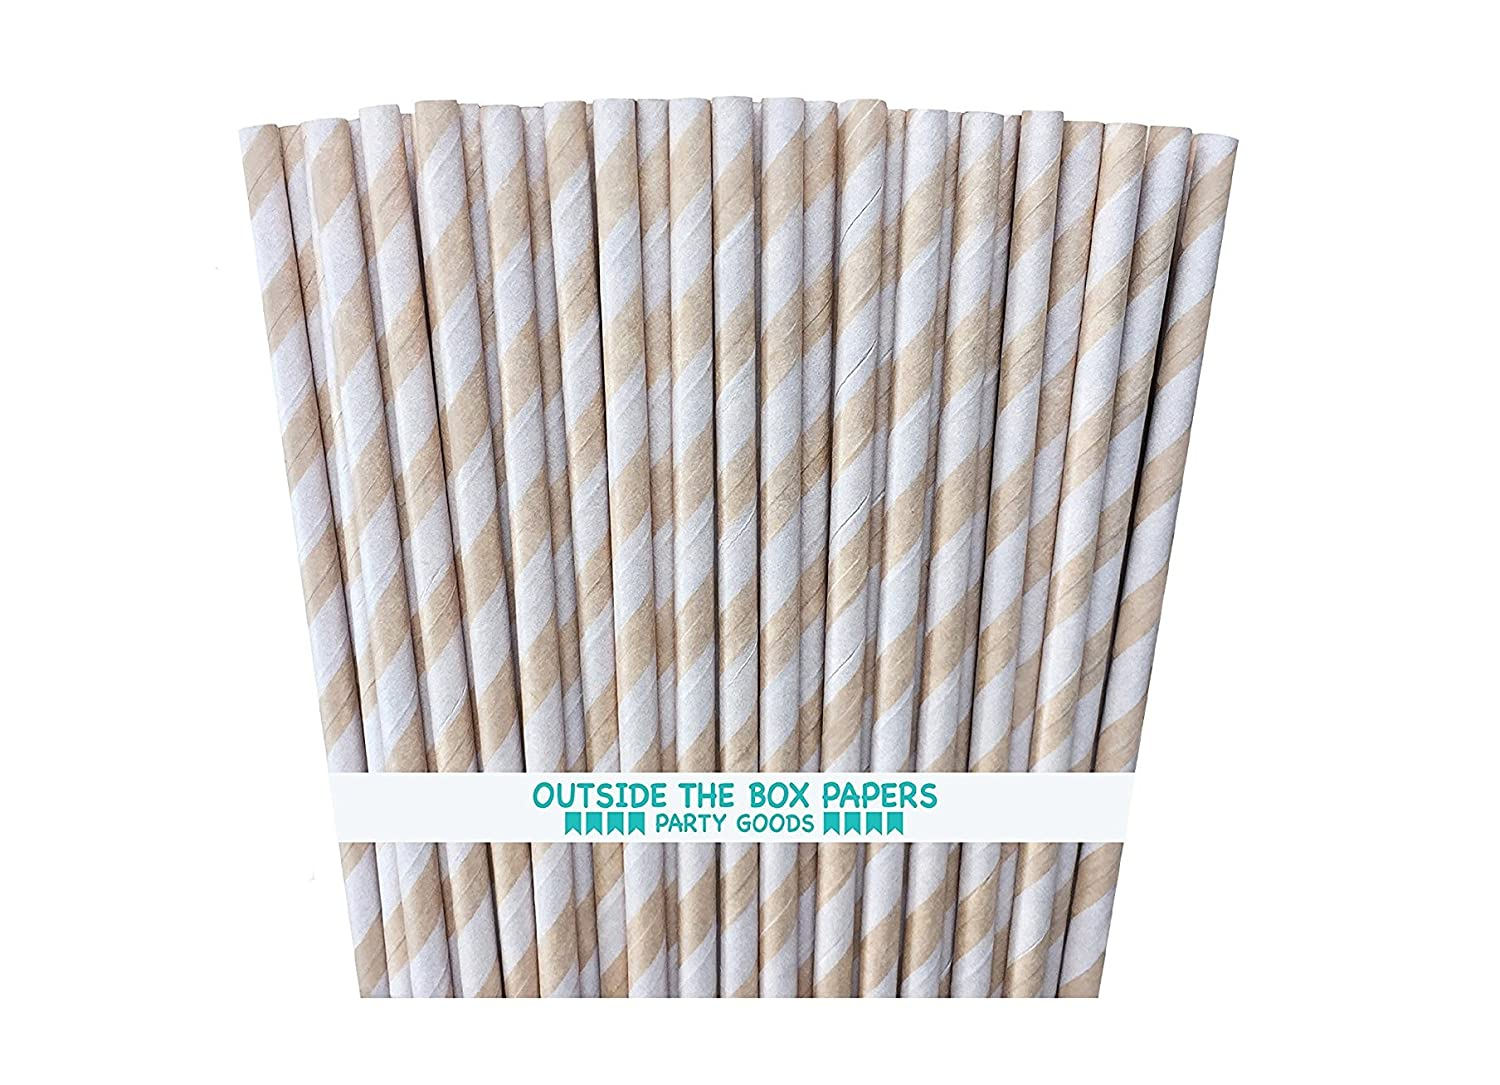 Outside the Box Papers Kraft Brown Striped Paper Straws 7.75 Inches 75 Pack Kraft Brown STR-0076